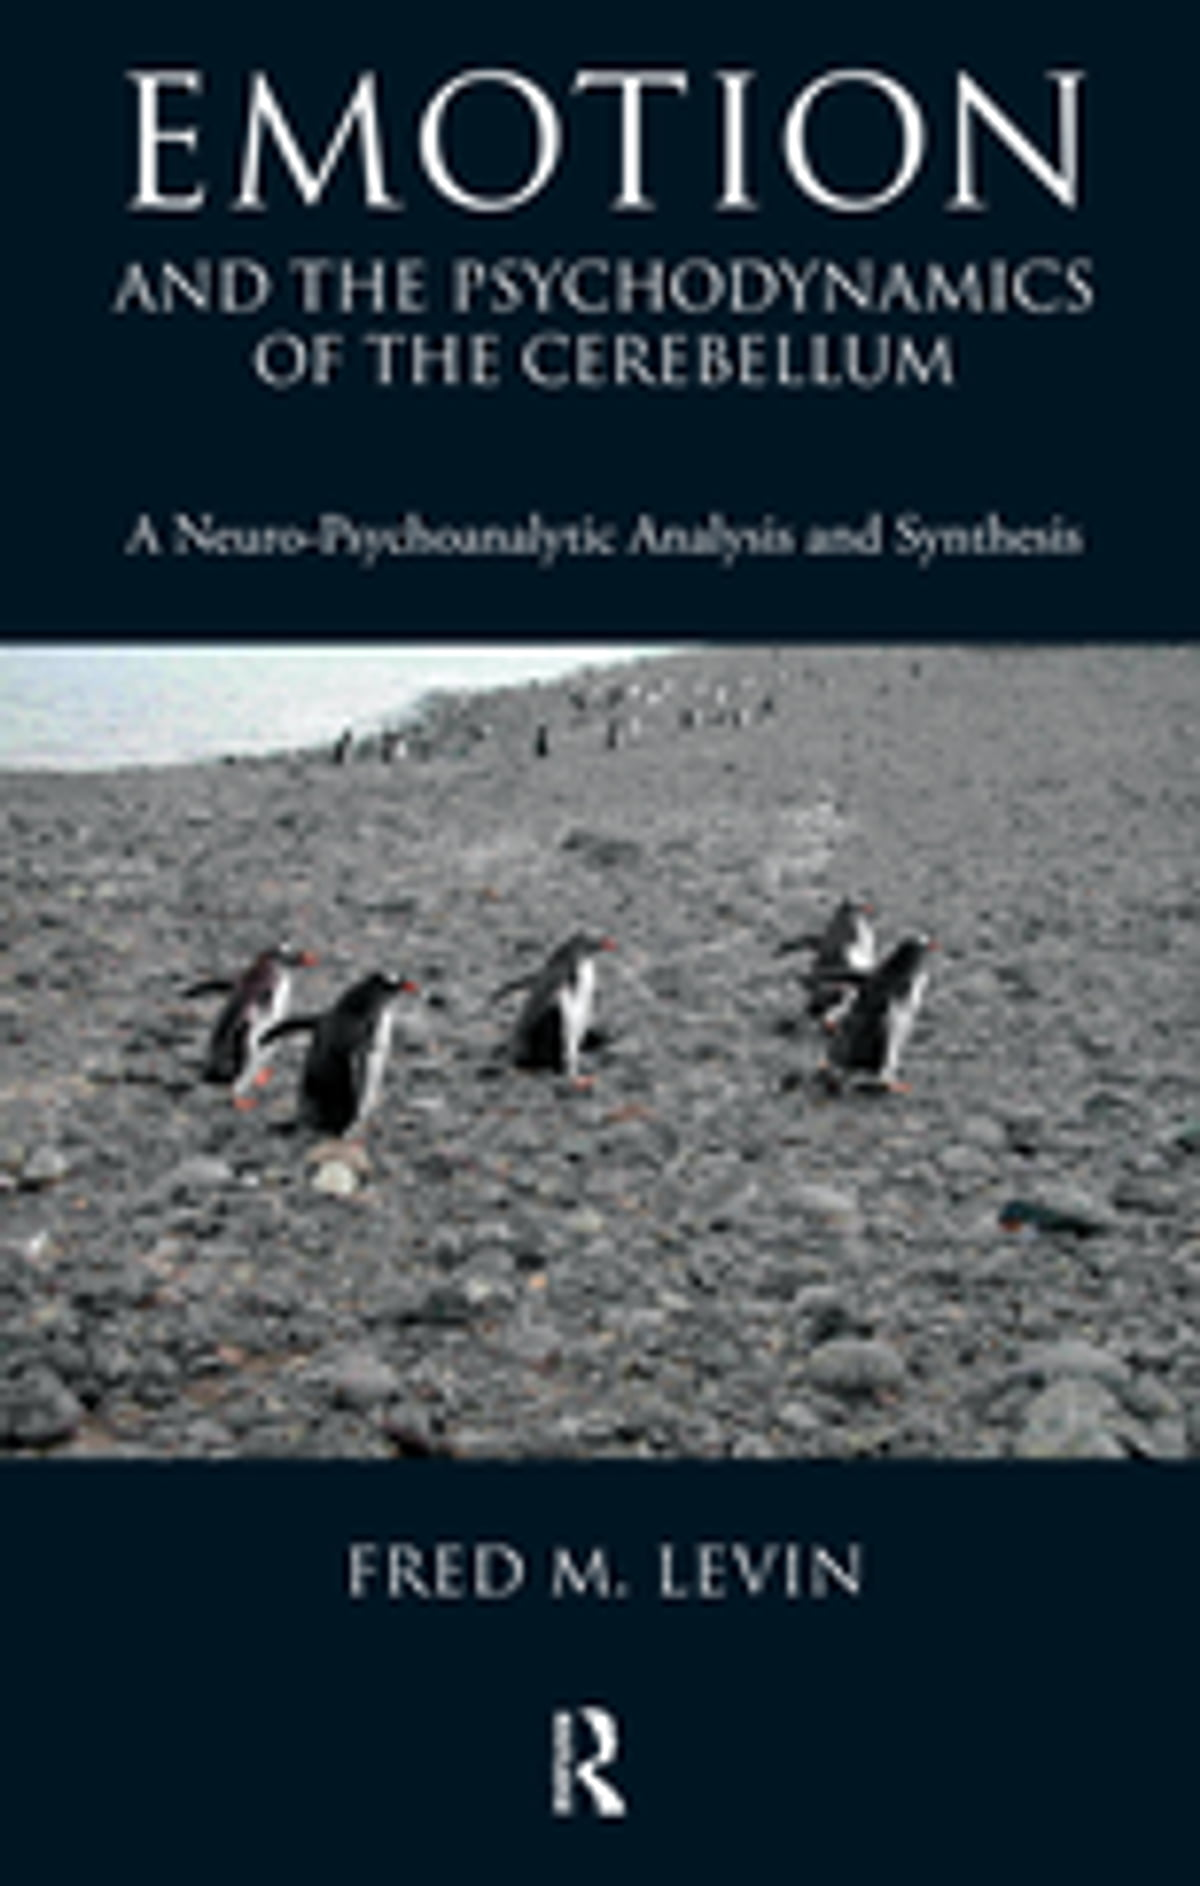 Emotion and the Psychodynamics of the Cerebellum eBook by Fred M. Levin -  9780429913204   Rakuten Kobo